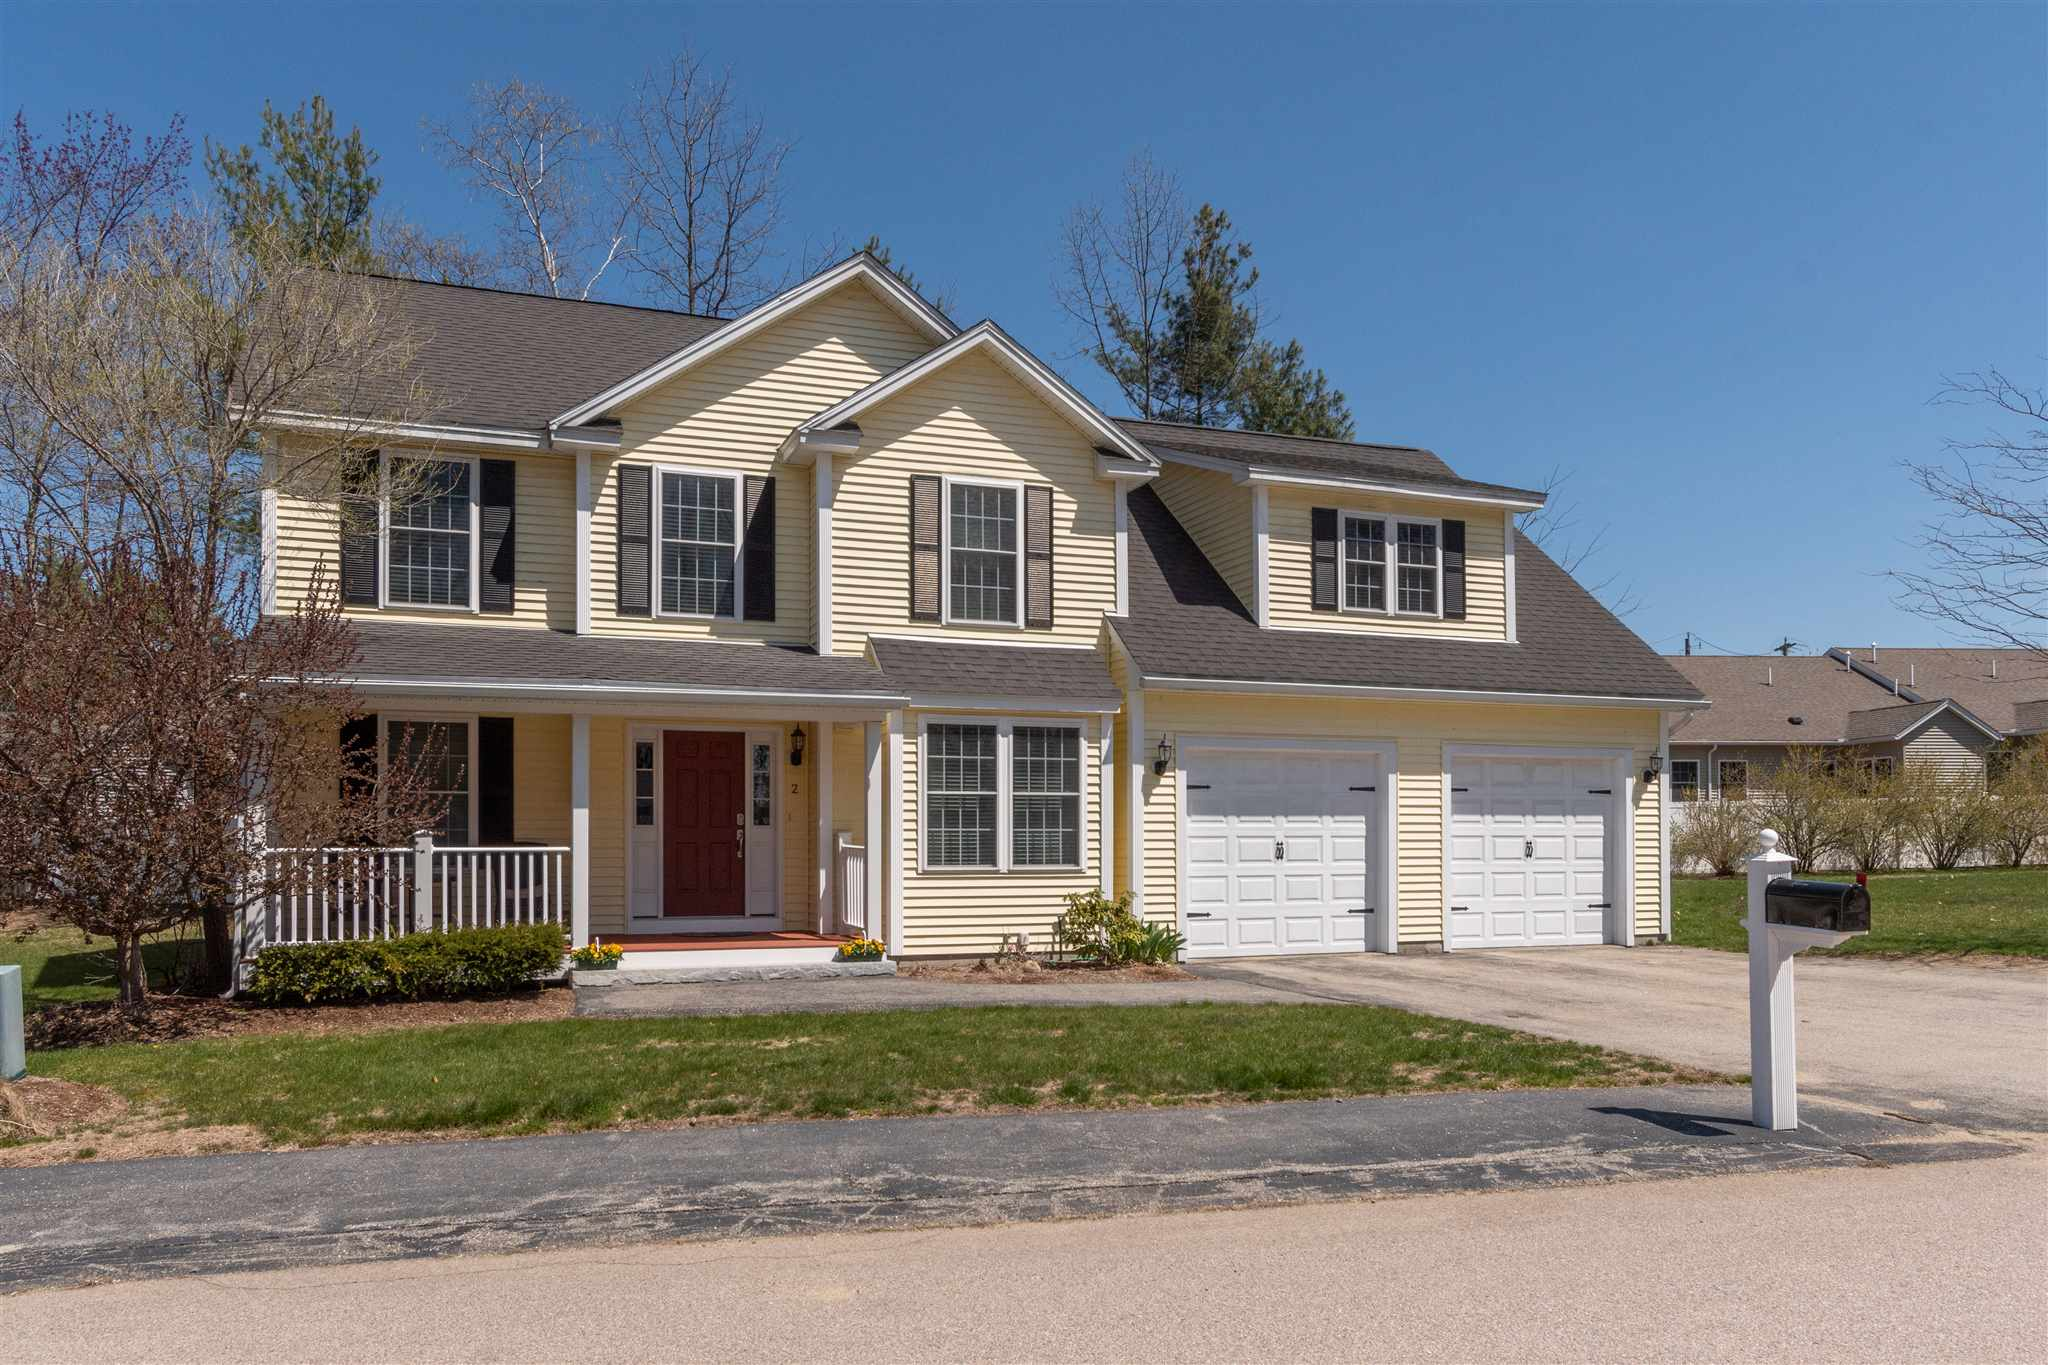 Photo of 2 Lowther Place Nashua NH 03062